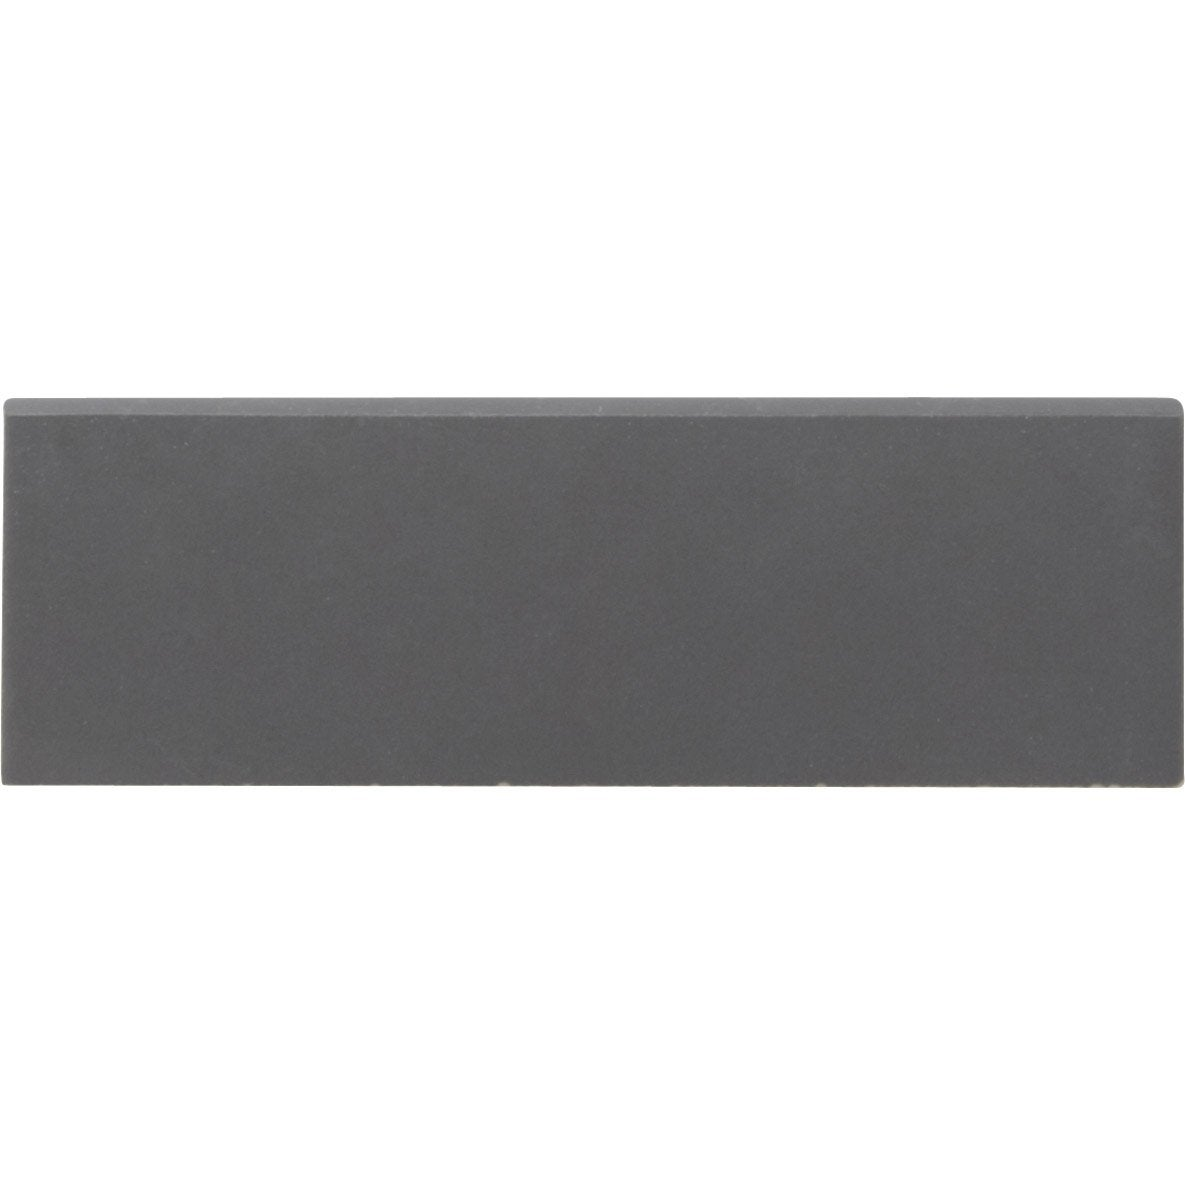 Plinthe carrelage 6 cm for Plinthes carrelage exterieur